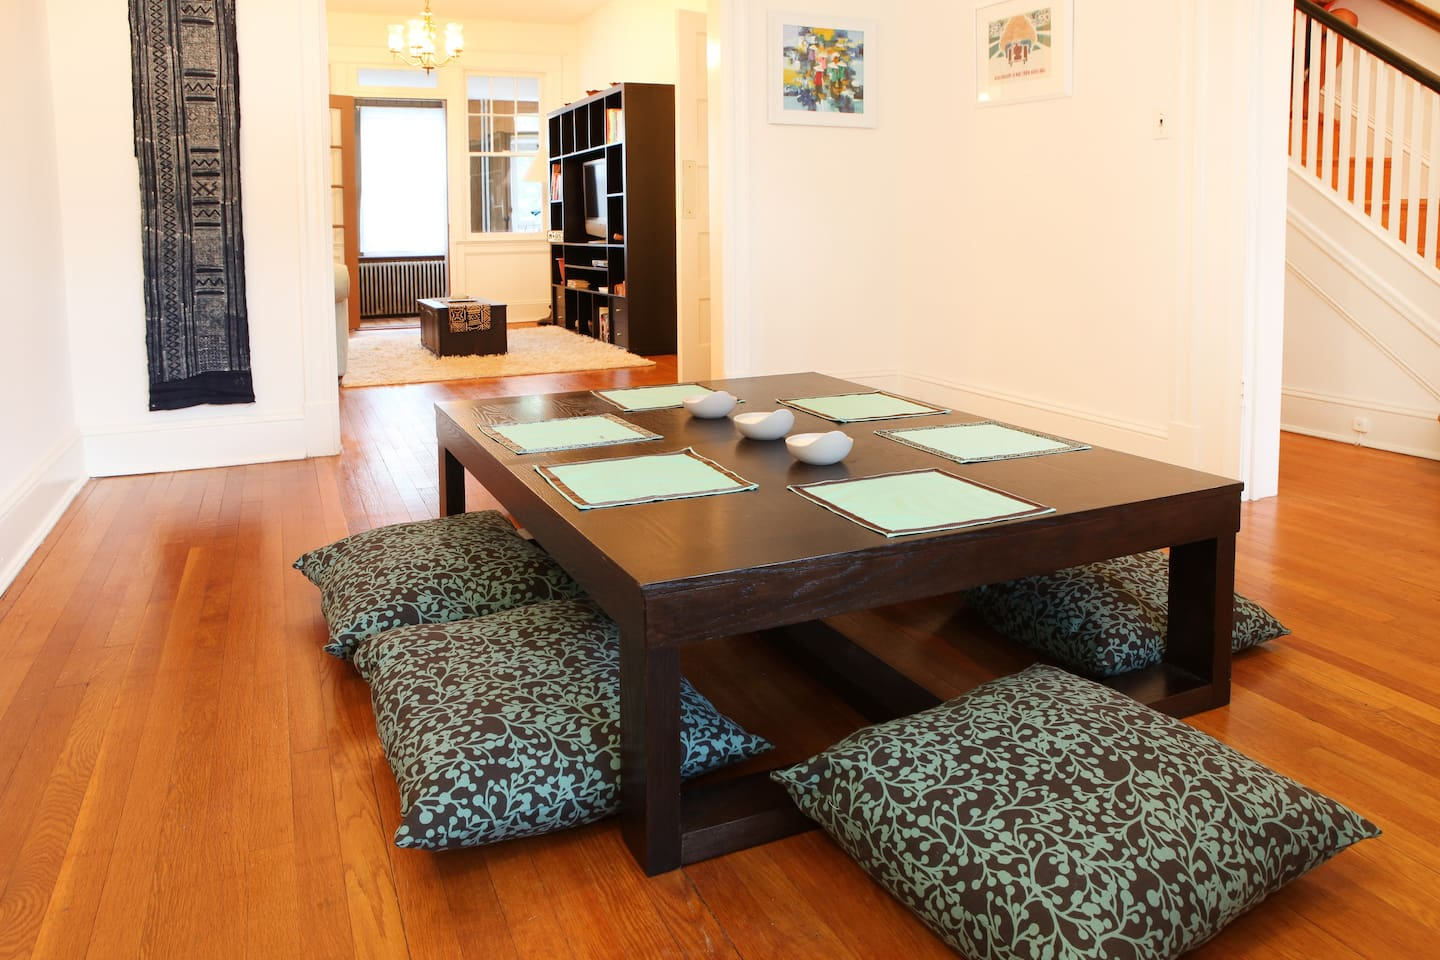 Dining room with asian-style table.  You can see the living room through the back